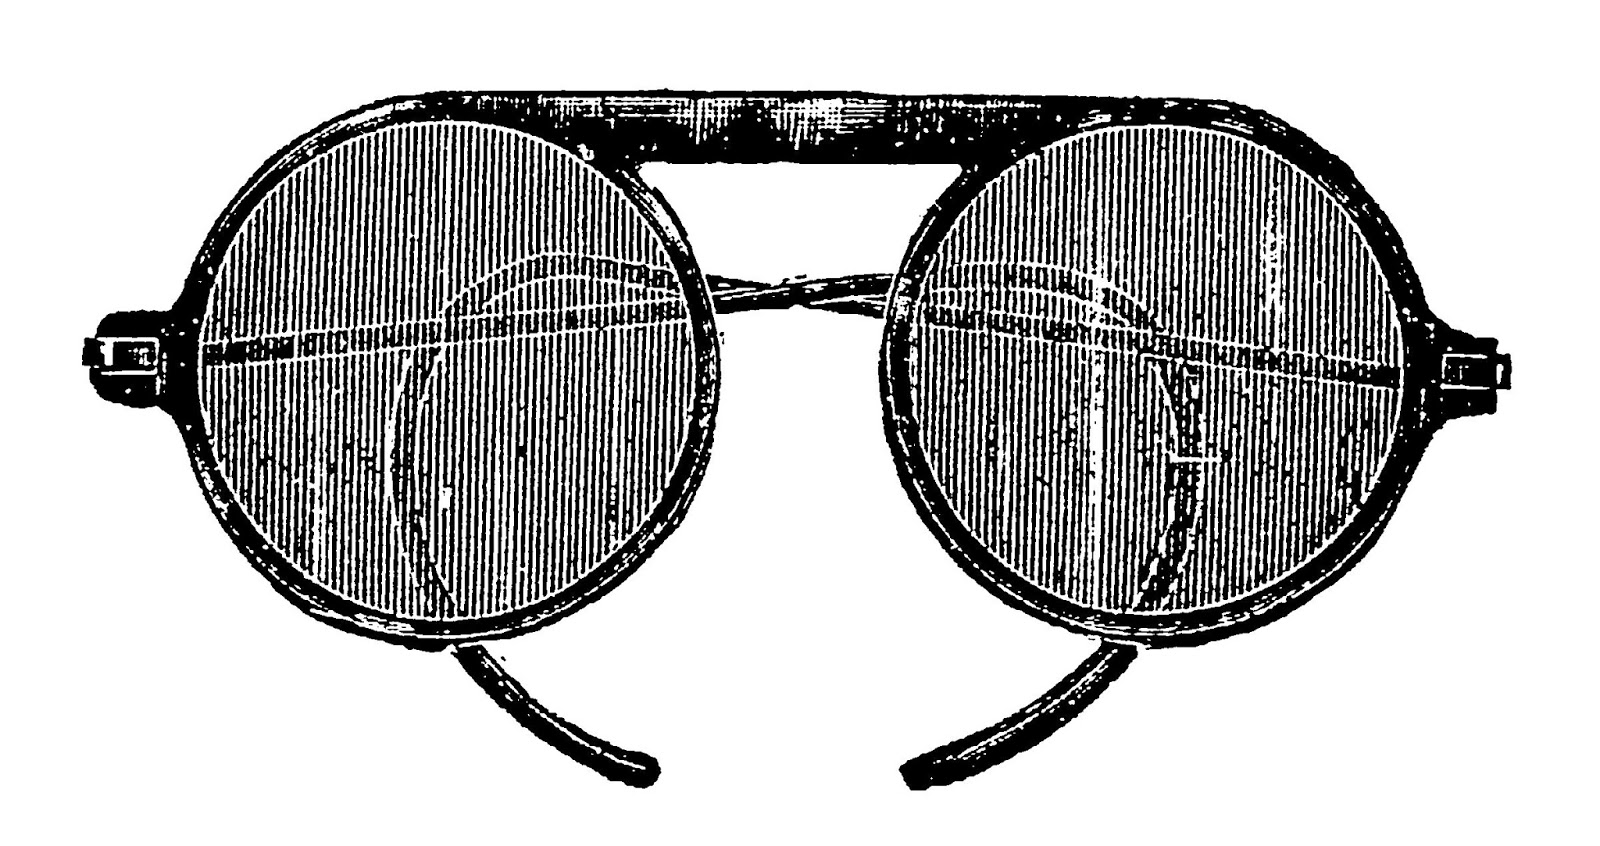 Sunglasses clipart vintage. Digital stamp design goggles